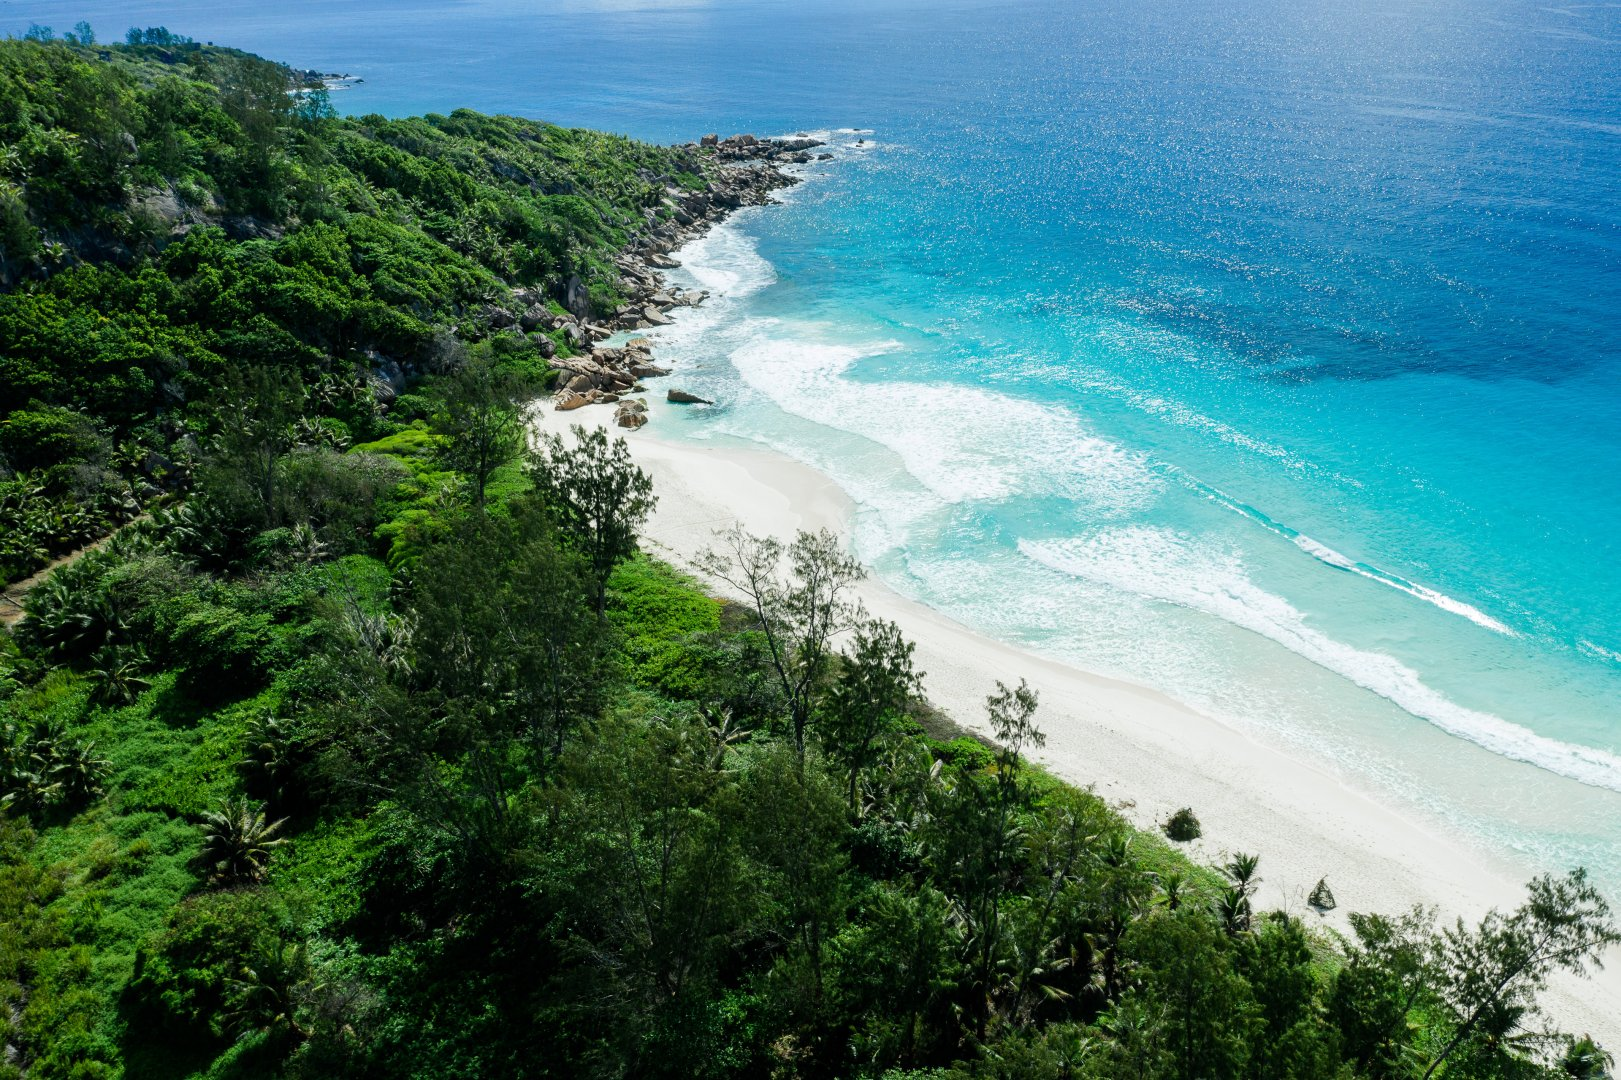 Body of water Coast Nature Vegetation Sea Shore Promontory Coastal and oceanic landforms Tropics Ocean Beach Natural landscape Sky Nature reserve Bay Headland Water resources Water Tree Cape Tourism Vacation Bight Wave Landscape Wind wave Caribbean Inlet Cove Plant